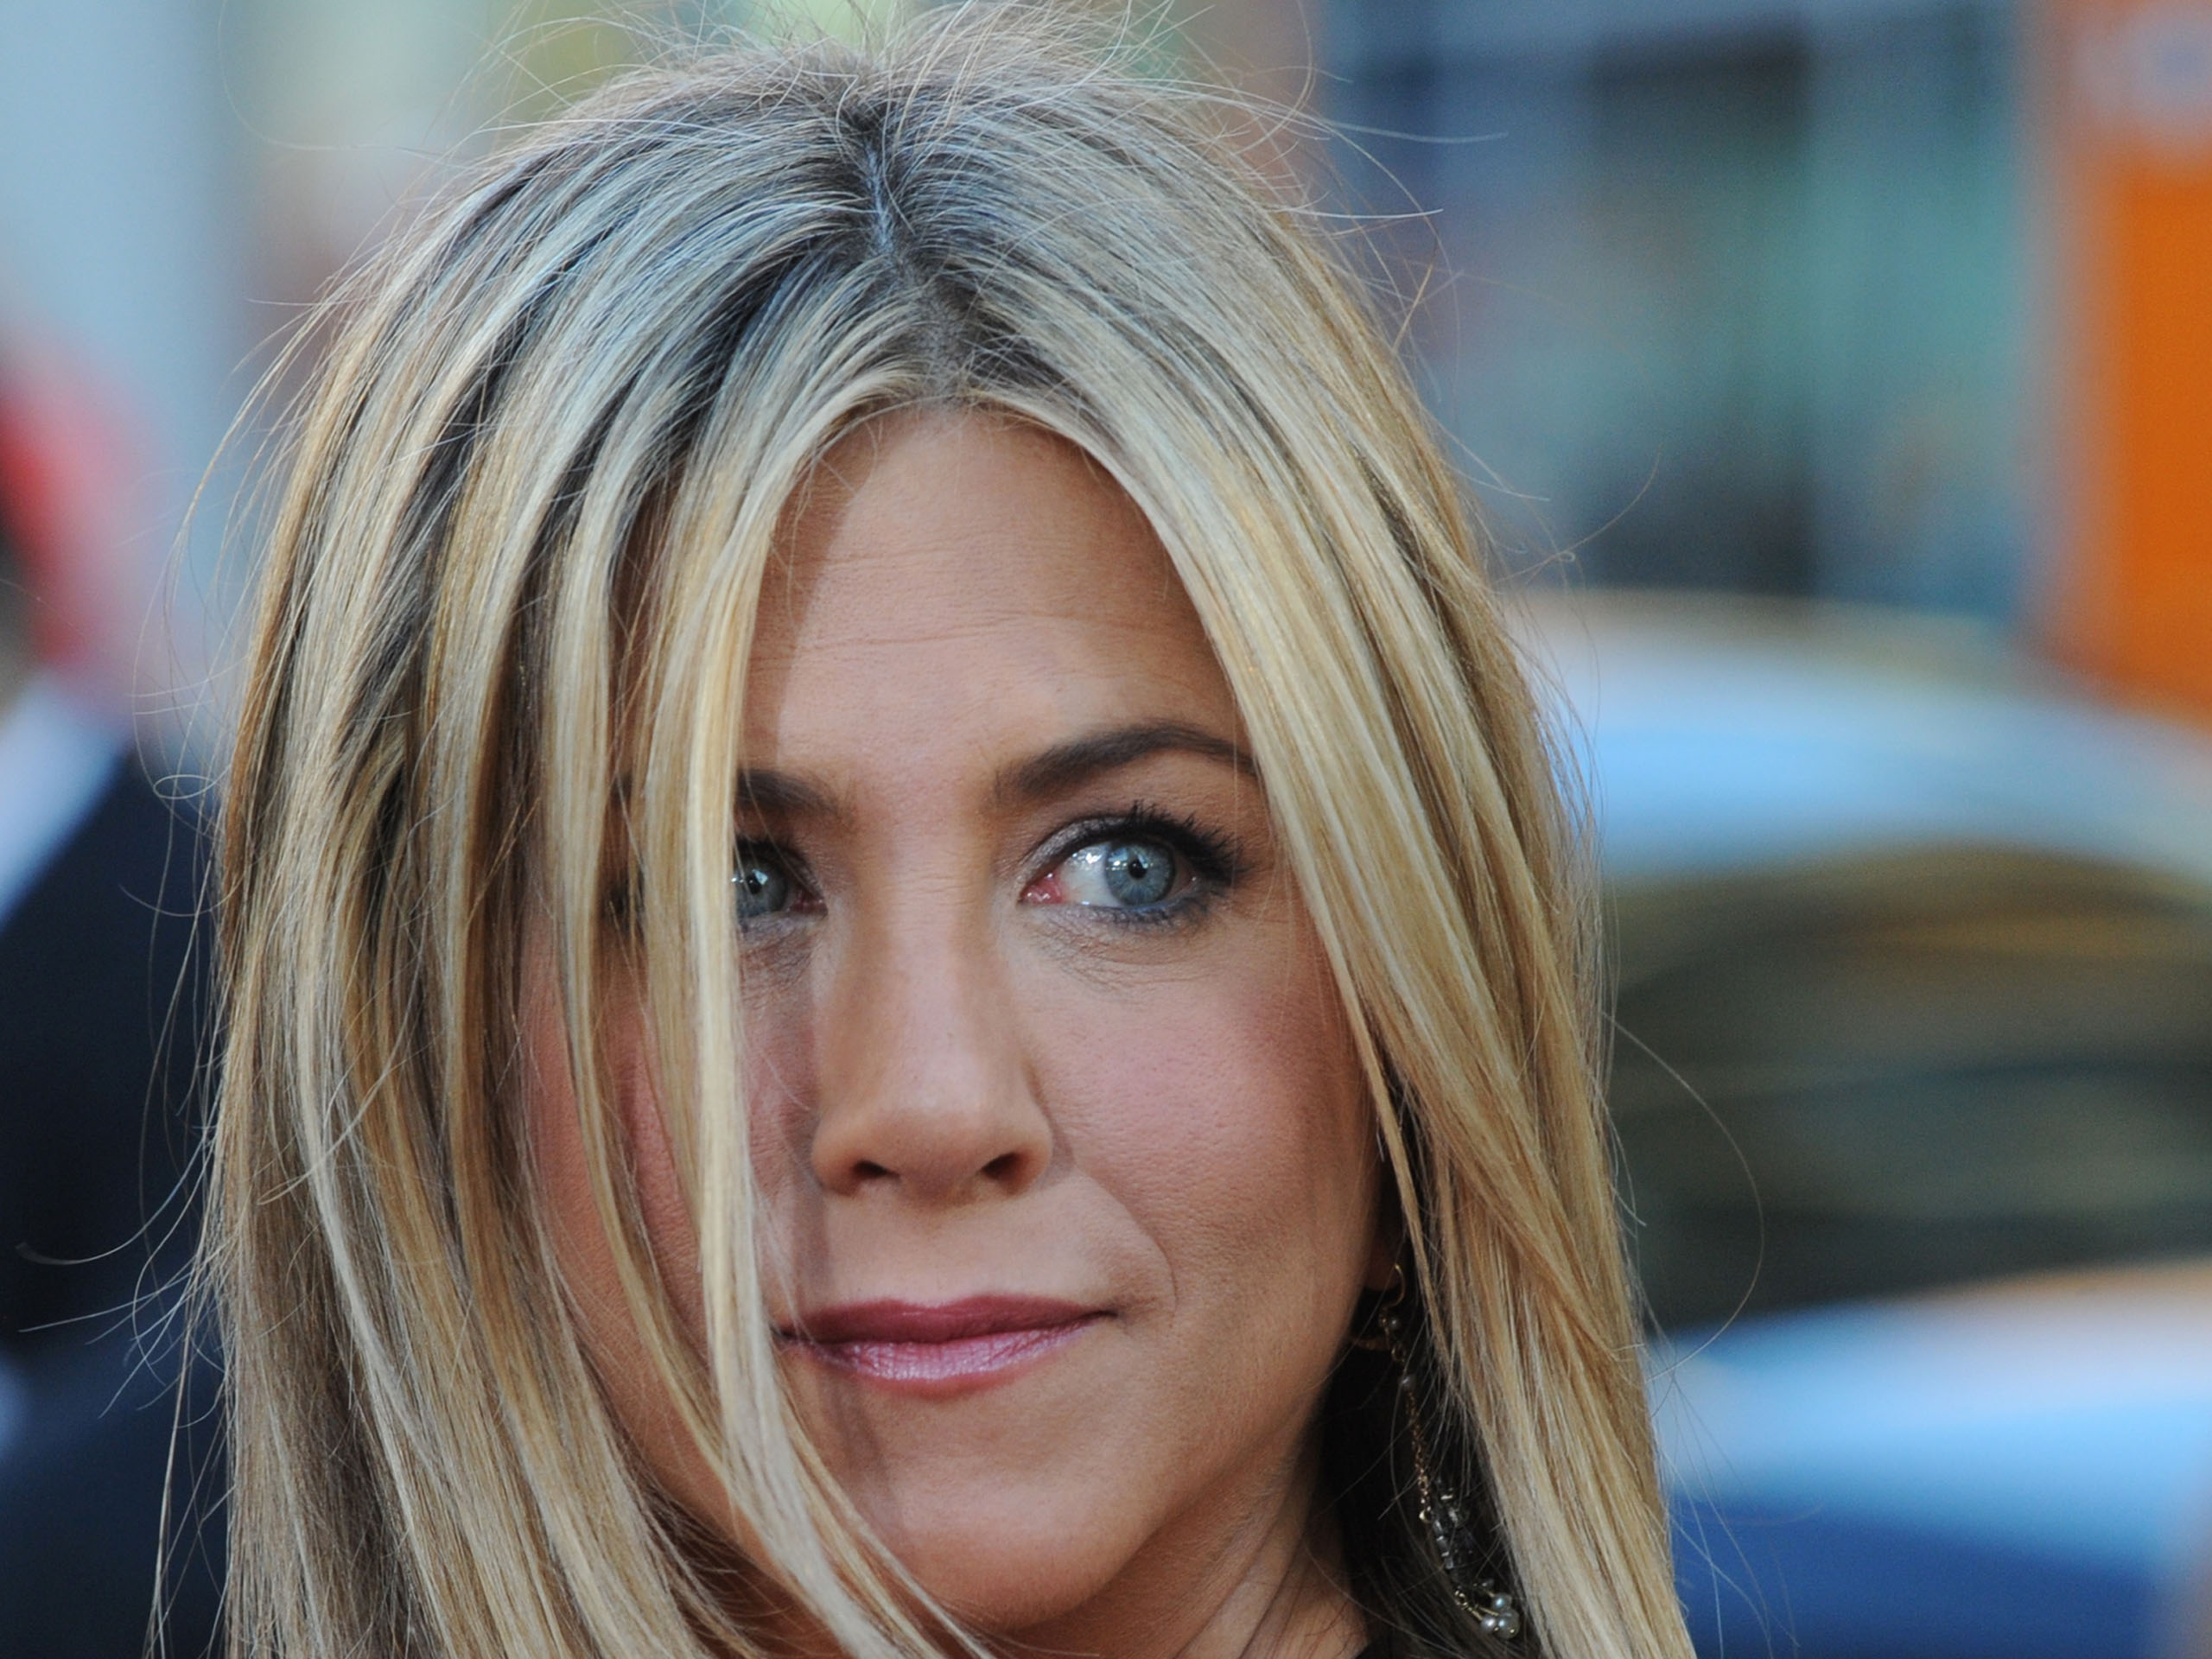 Jennifer Aniston Hot And Sexy Wallpapers All Hd Wallpapers